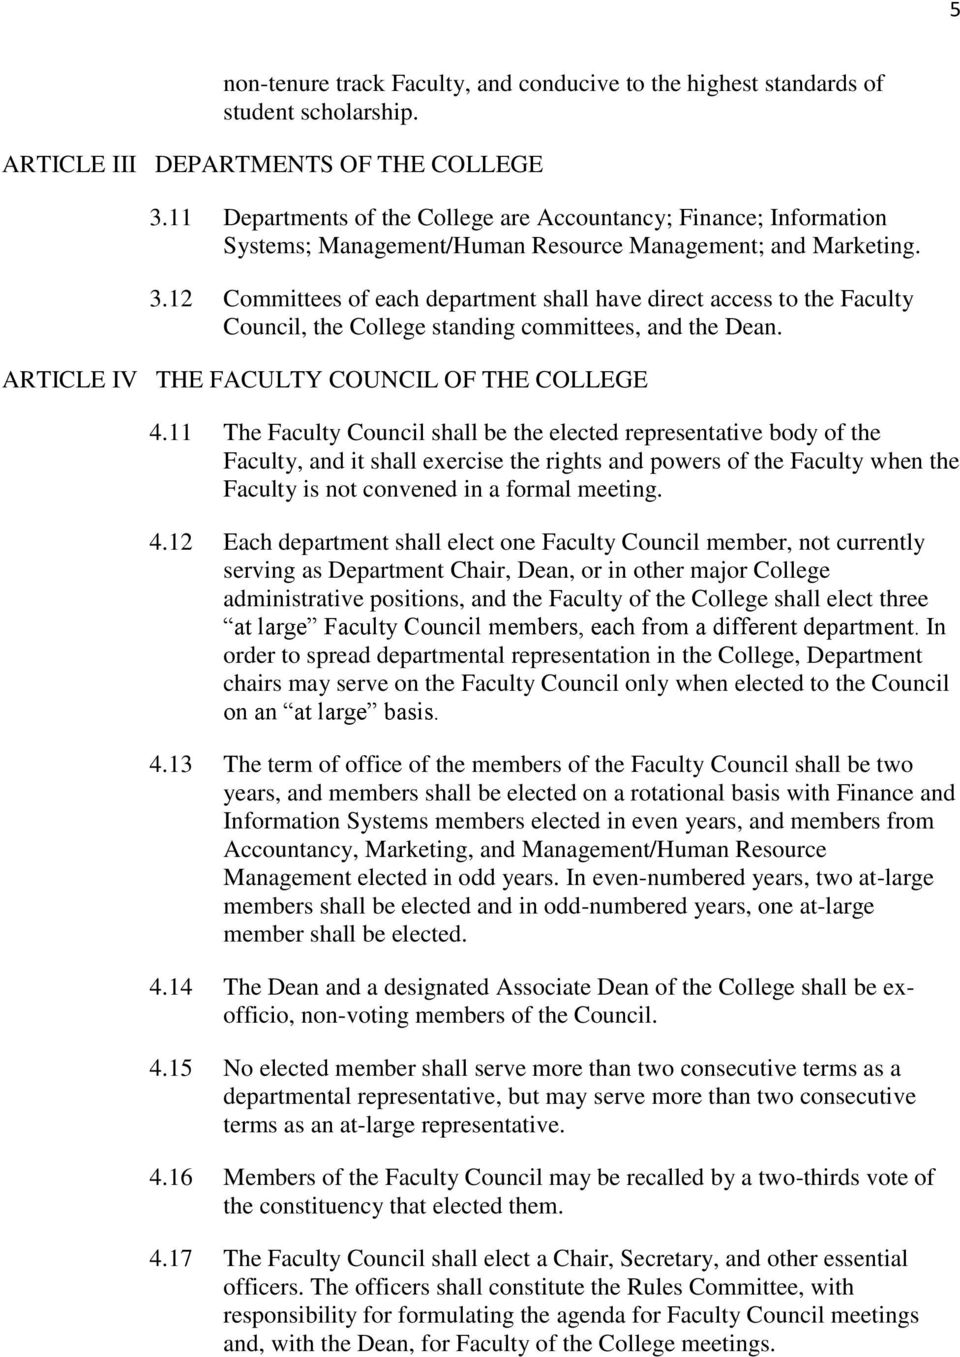 12 Committees of each department shall have direct access to the Faculty Council, the College standing committees, and the Dean. ARTICLE IV THE FACULTY COUNCIL OF THE COLLEGE 4.